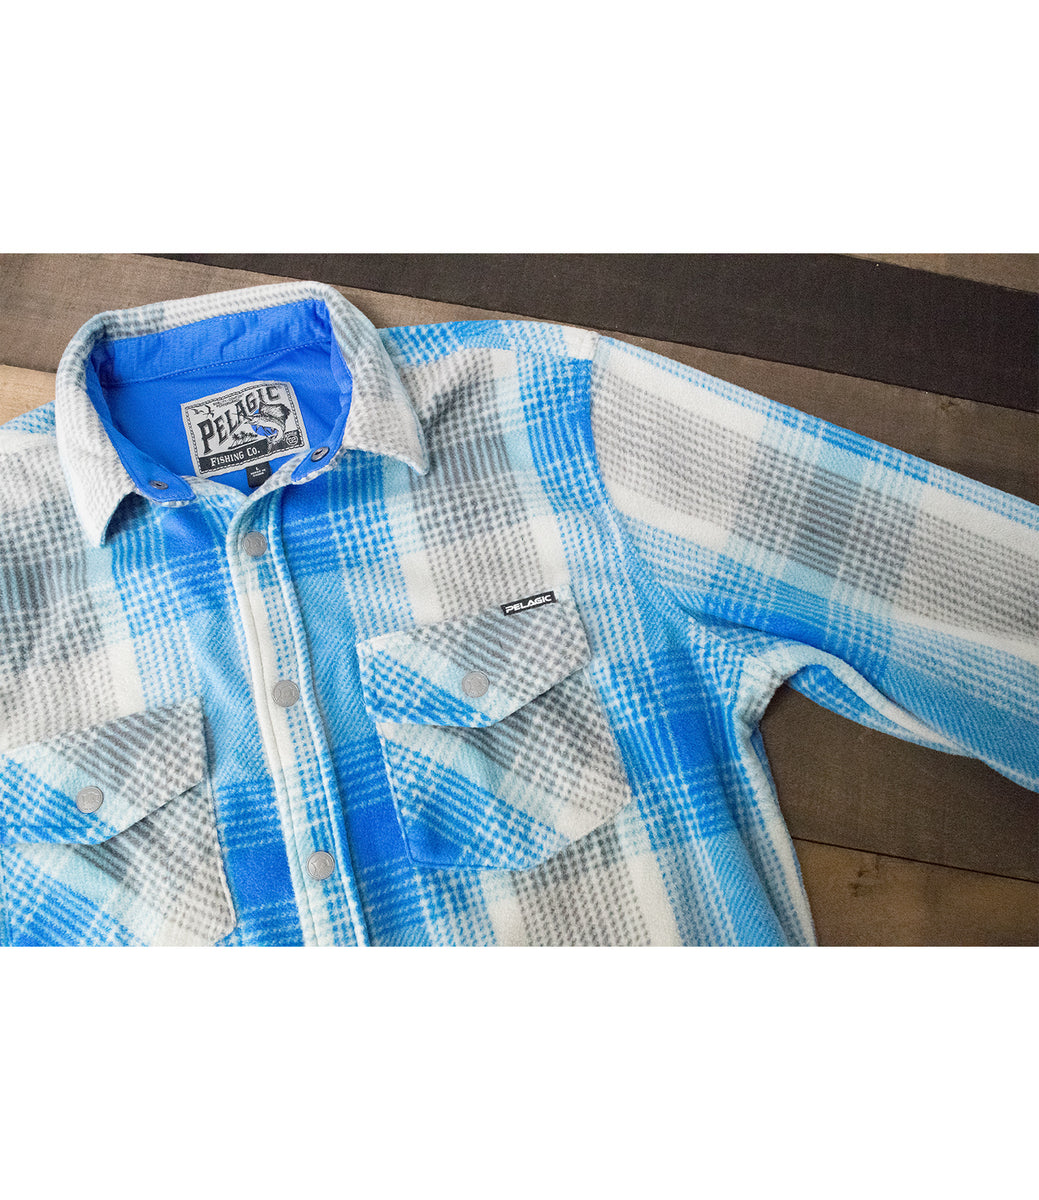 Quest Performance Flannel Big Image - 4